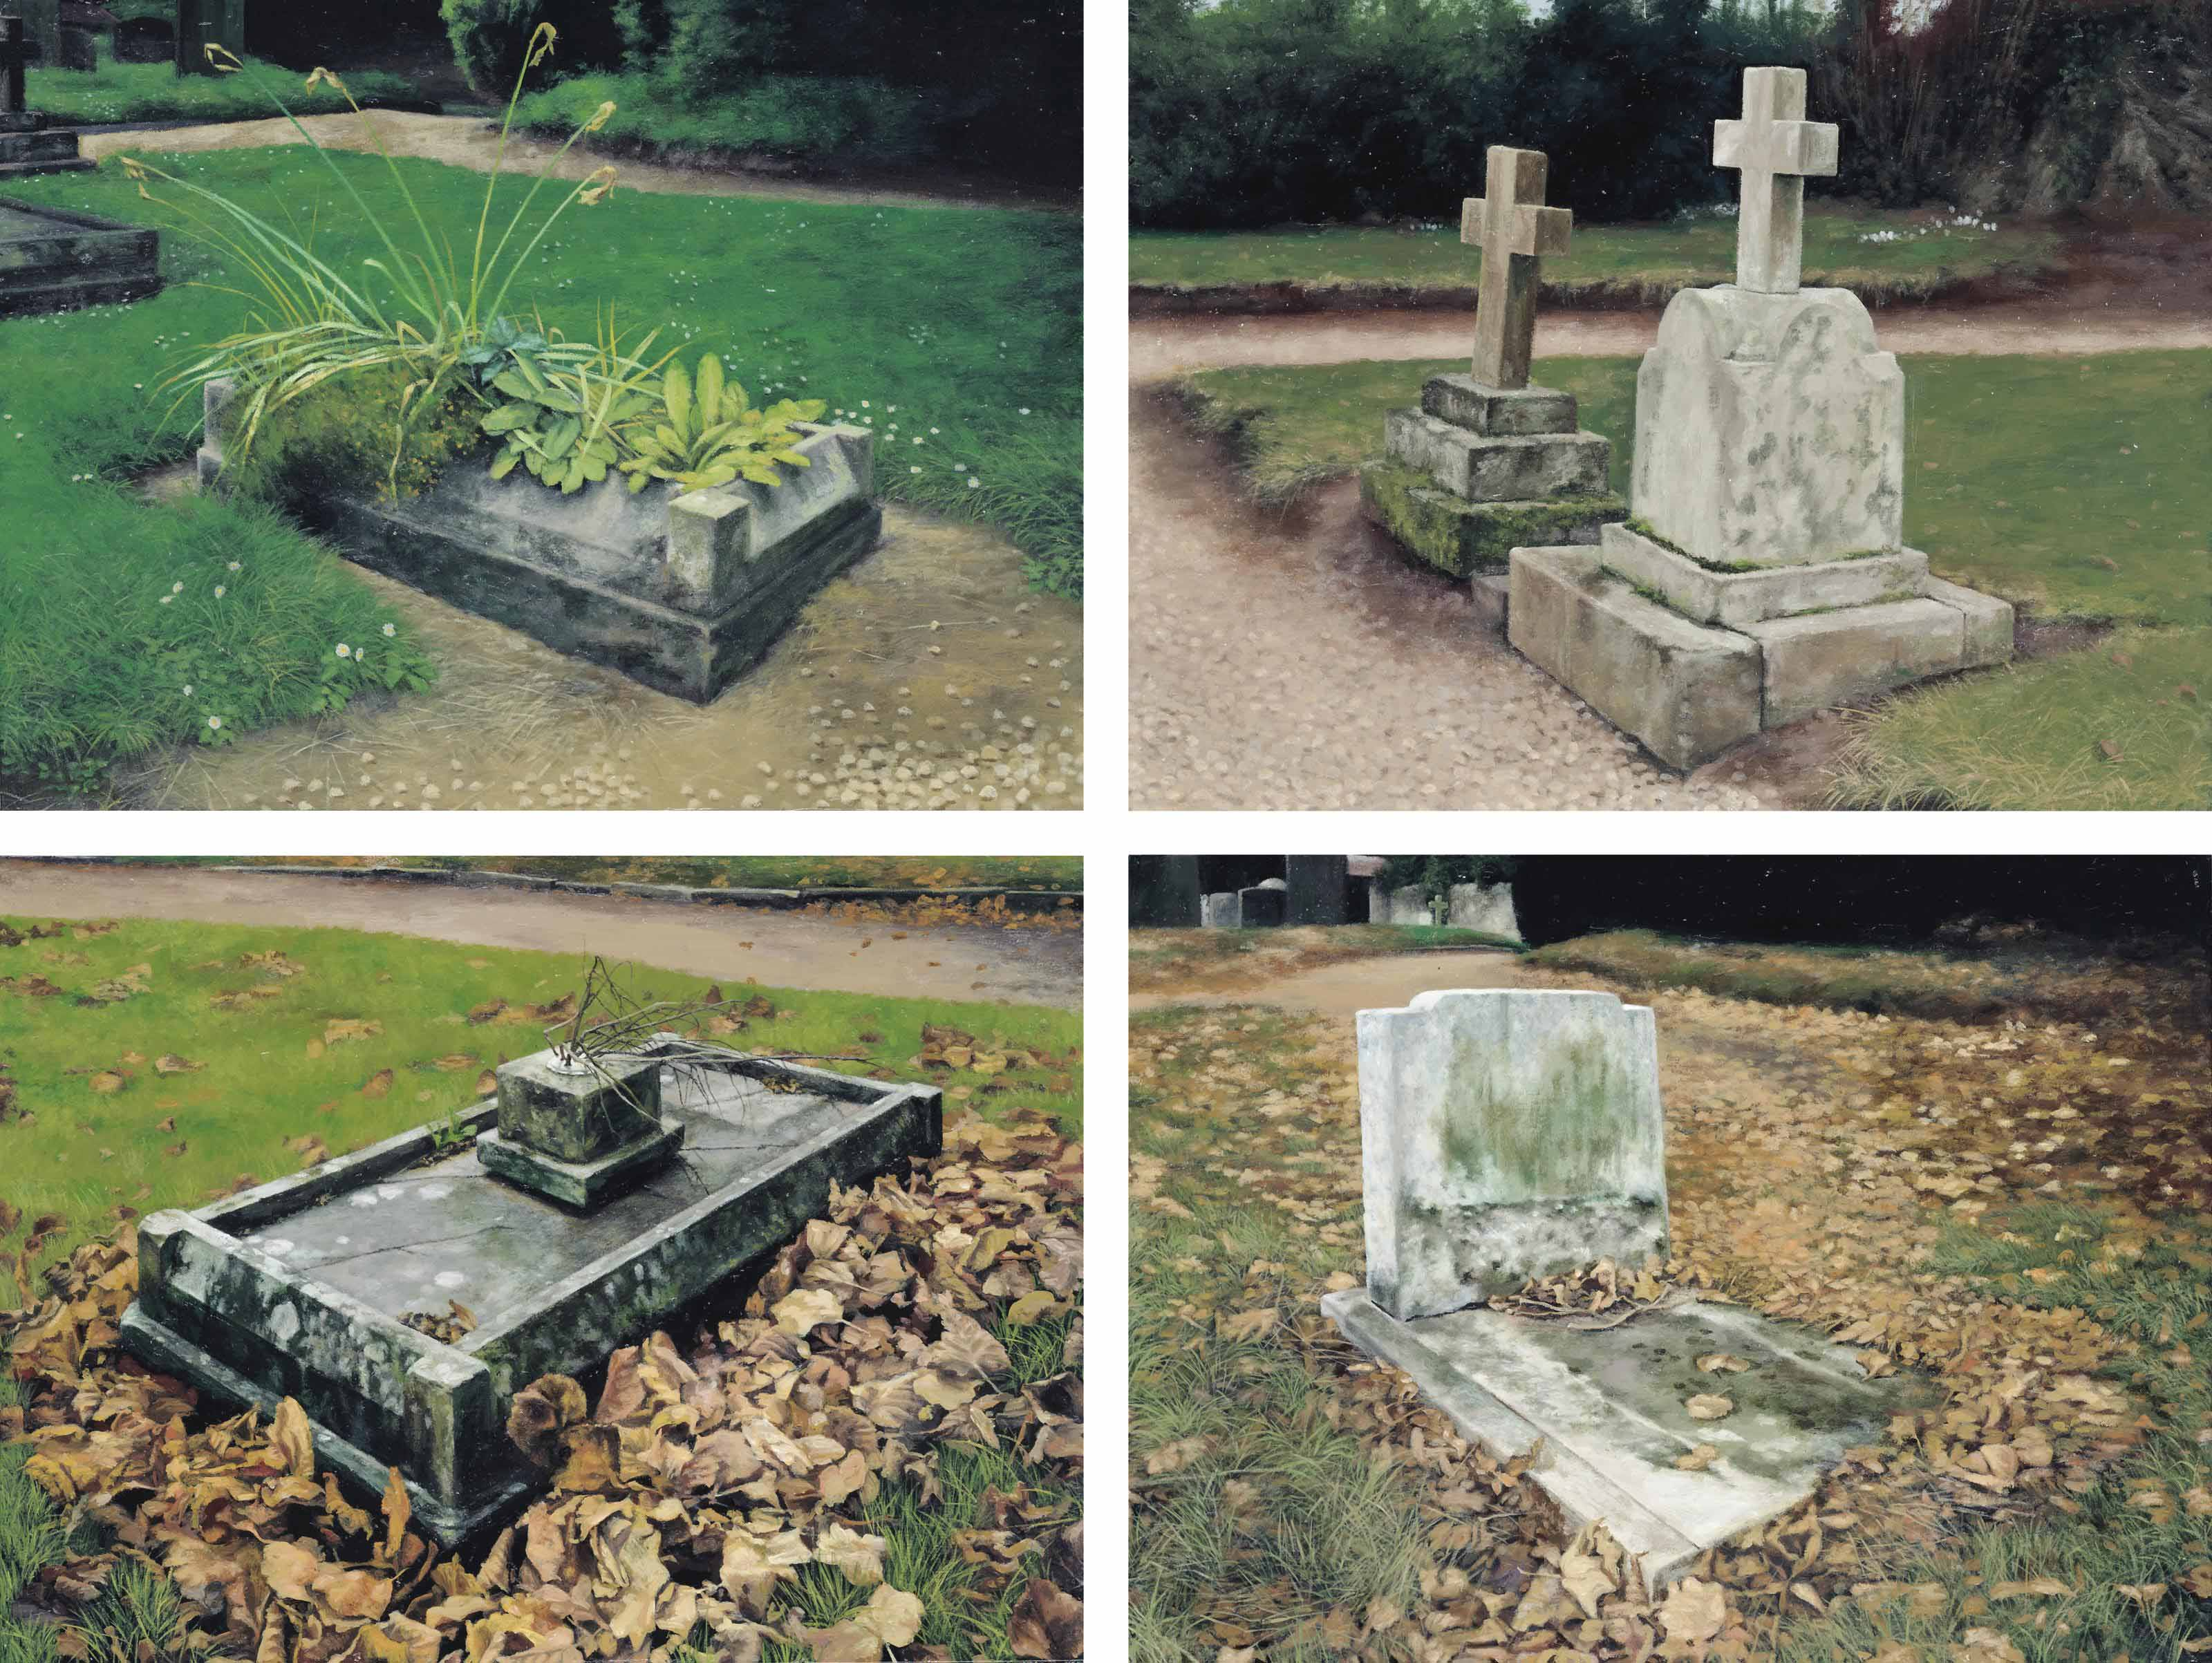 (i) The Little Graves I (ii) The Little Graves II (iii) The Little Graves III (iv) The Little Graves IV